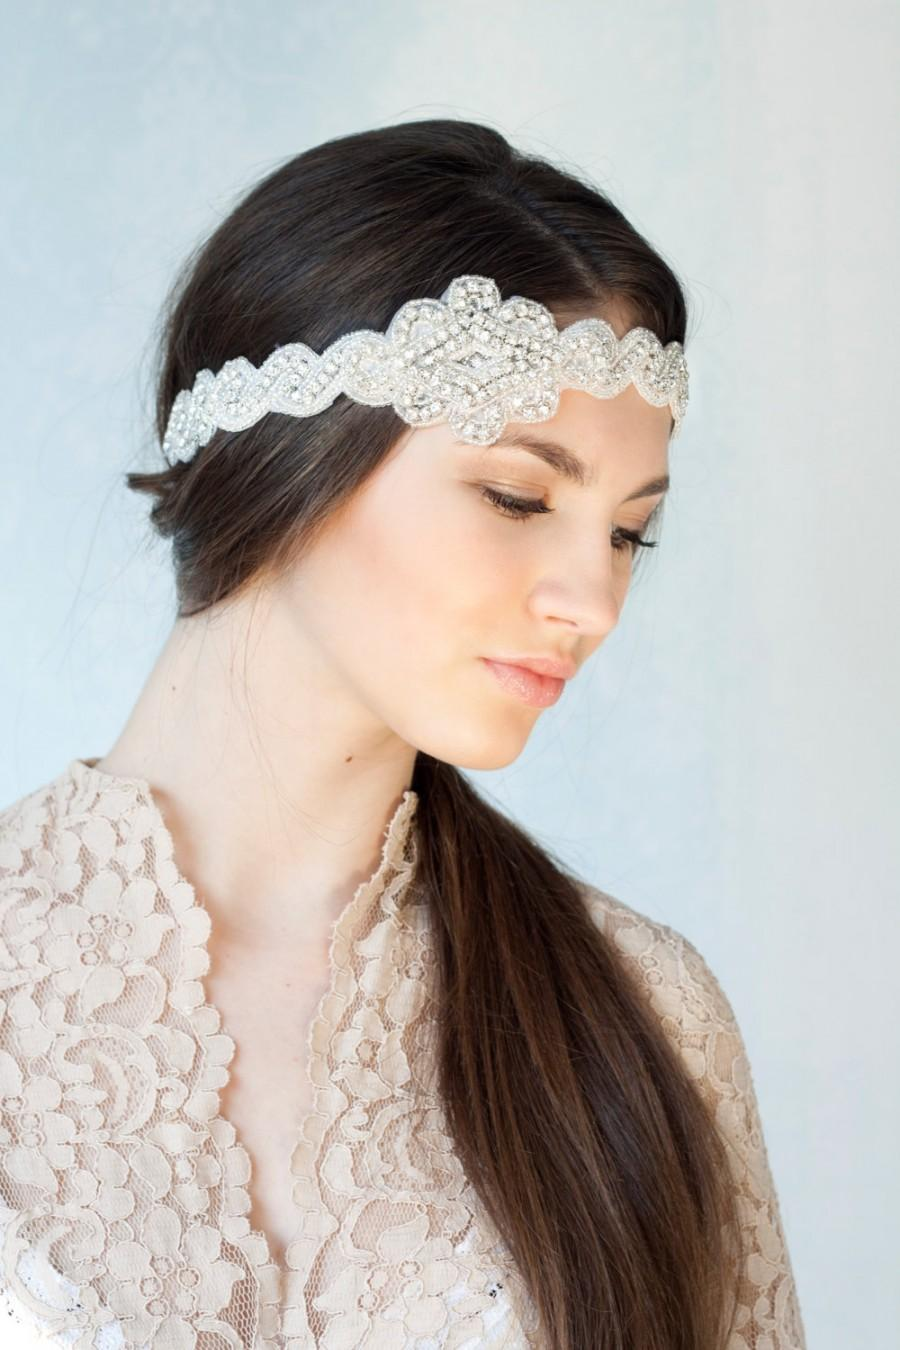 Wedding - Bridal rhinestone headband, self ties, beaded headband with rhinestones, boho bride